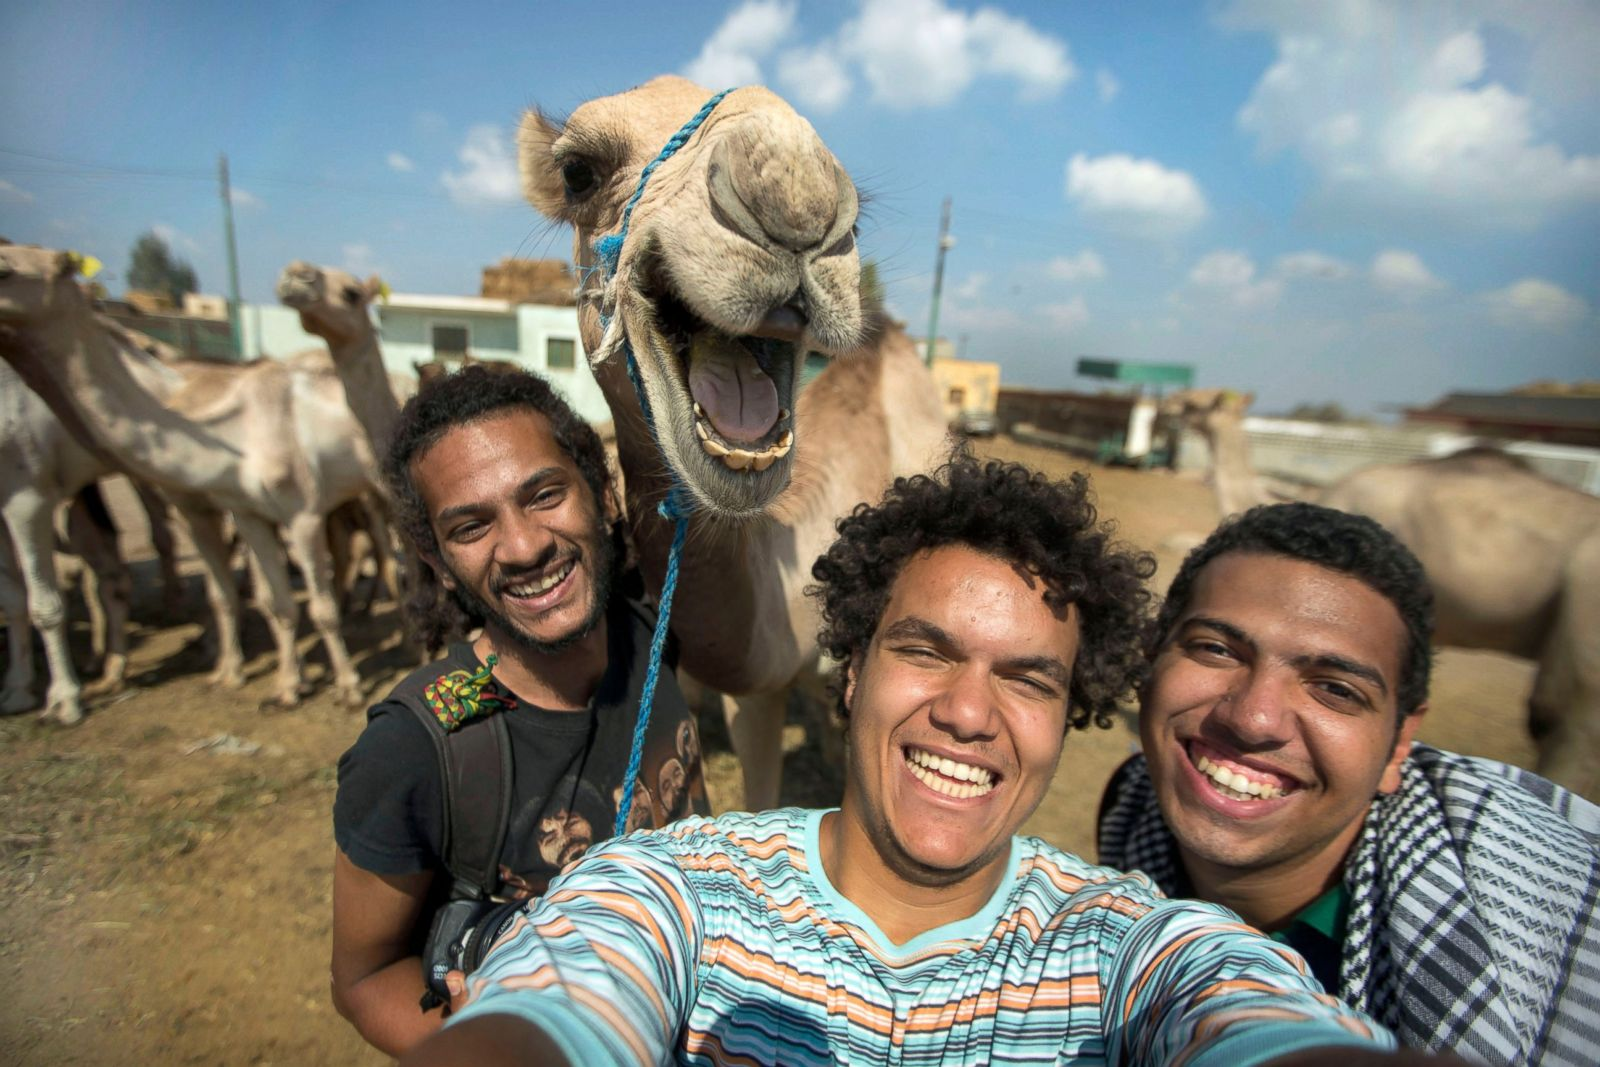 Camel selfies are the best